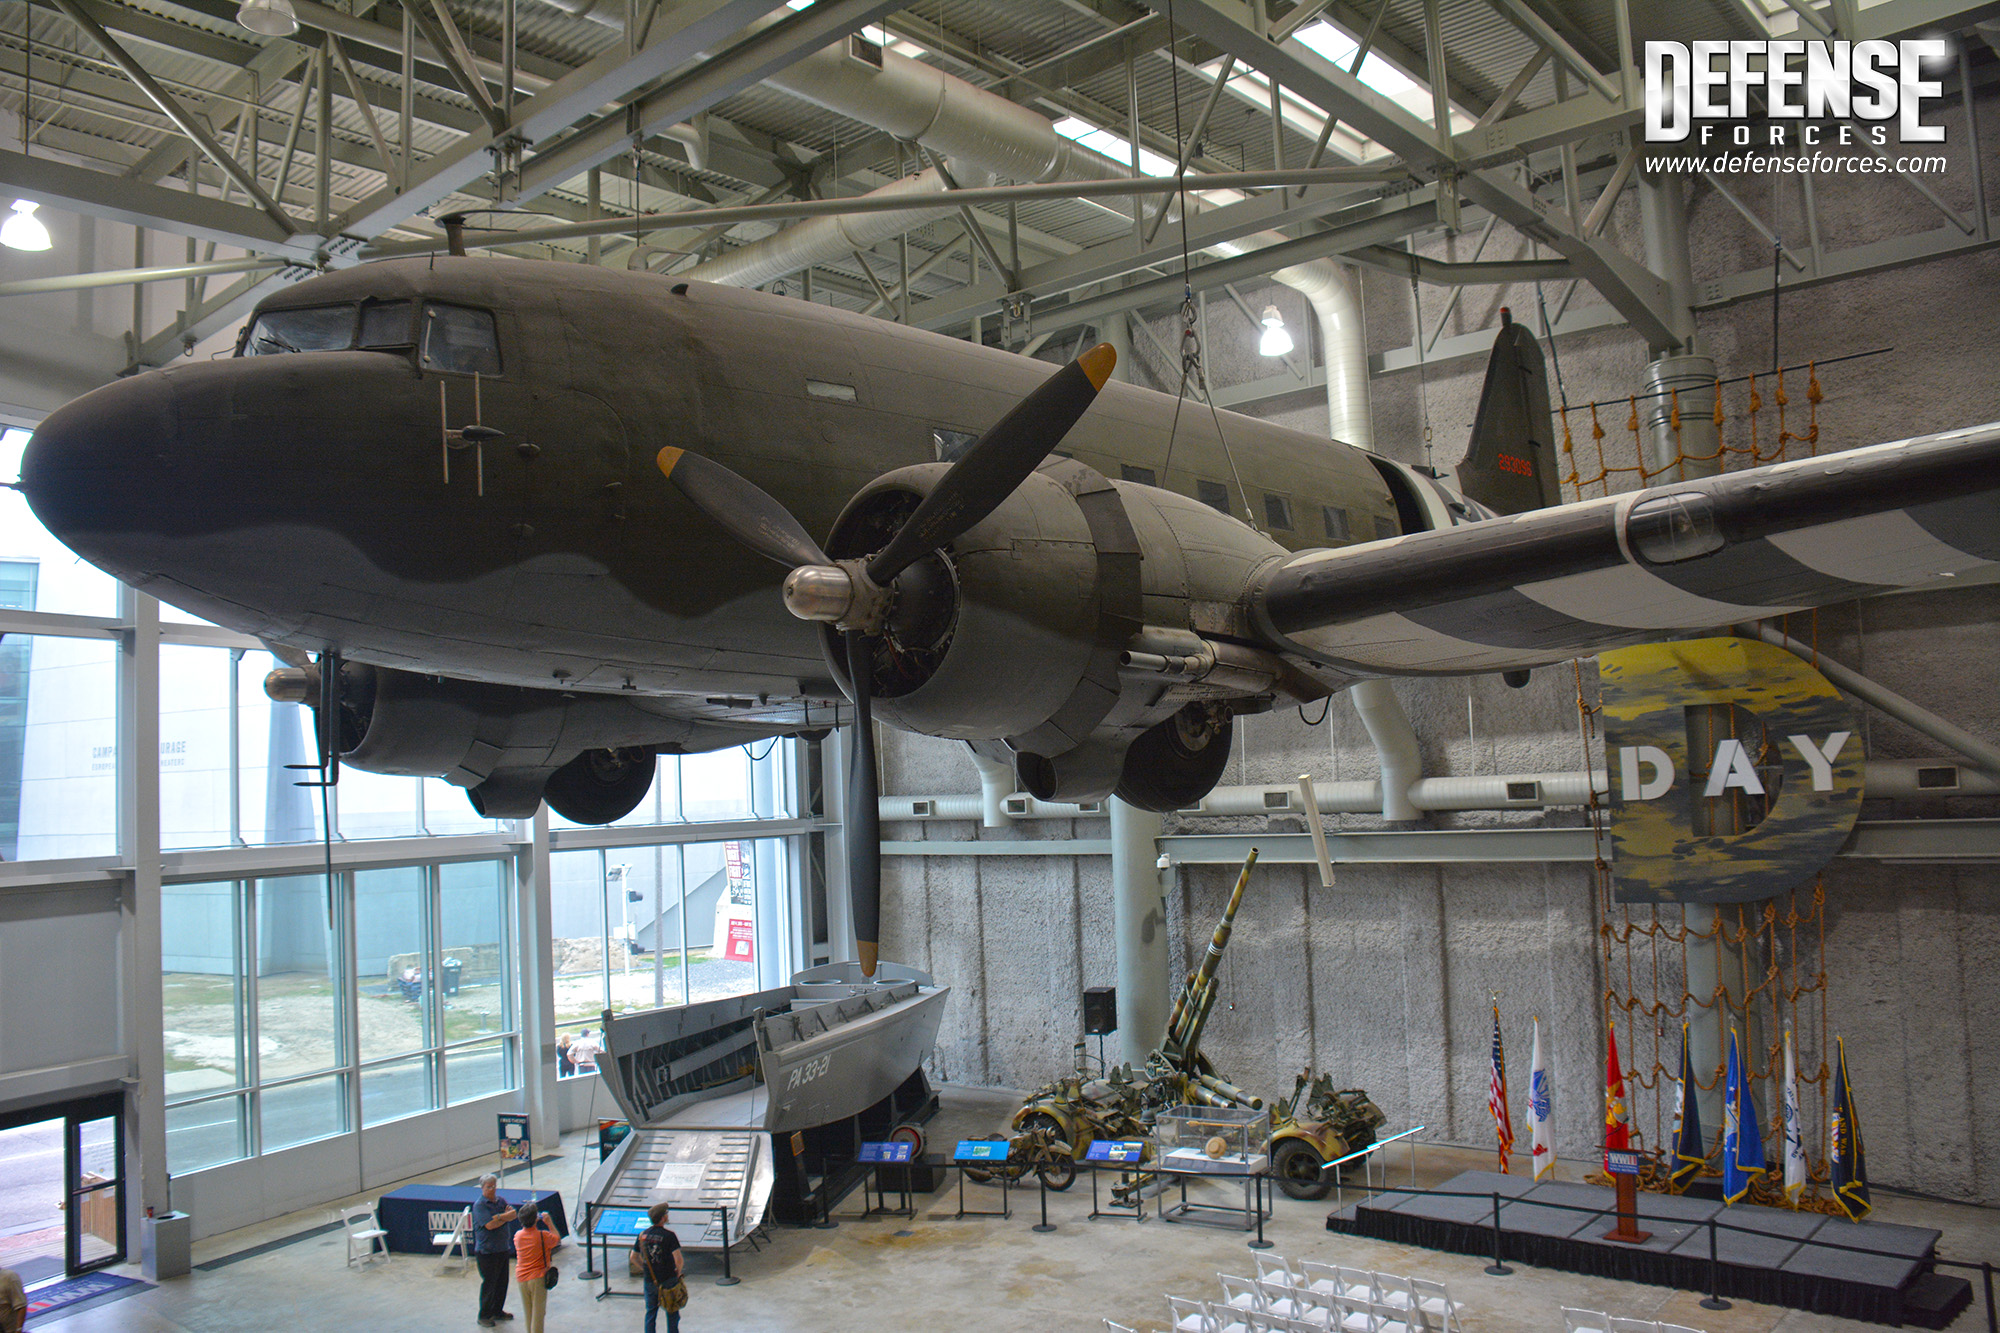 The National WWII Museum - 3